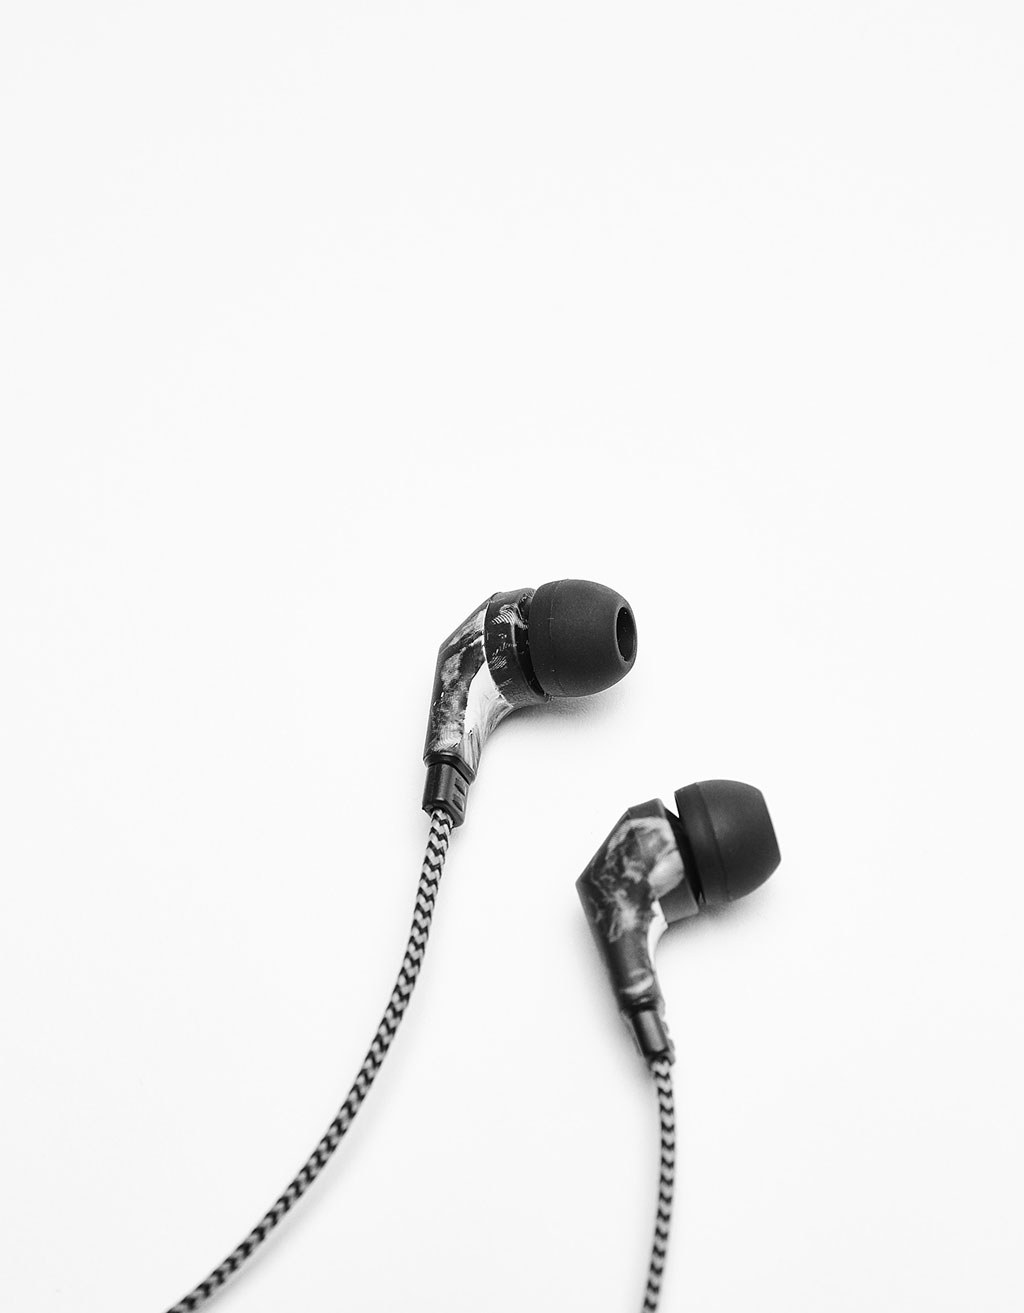 Marble-effect earphones